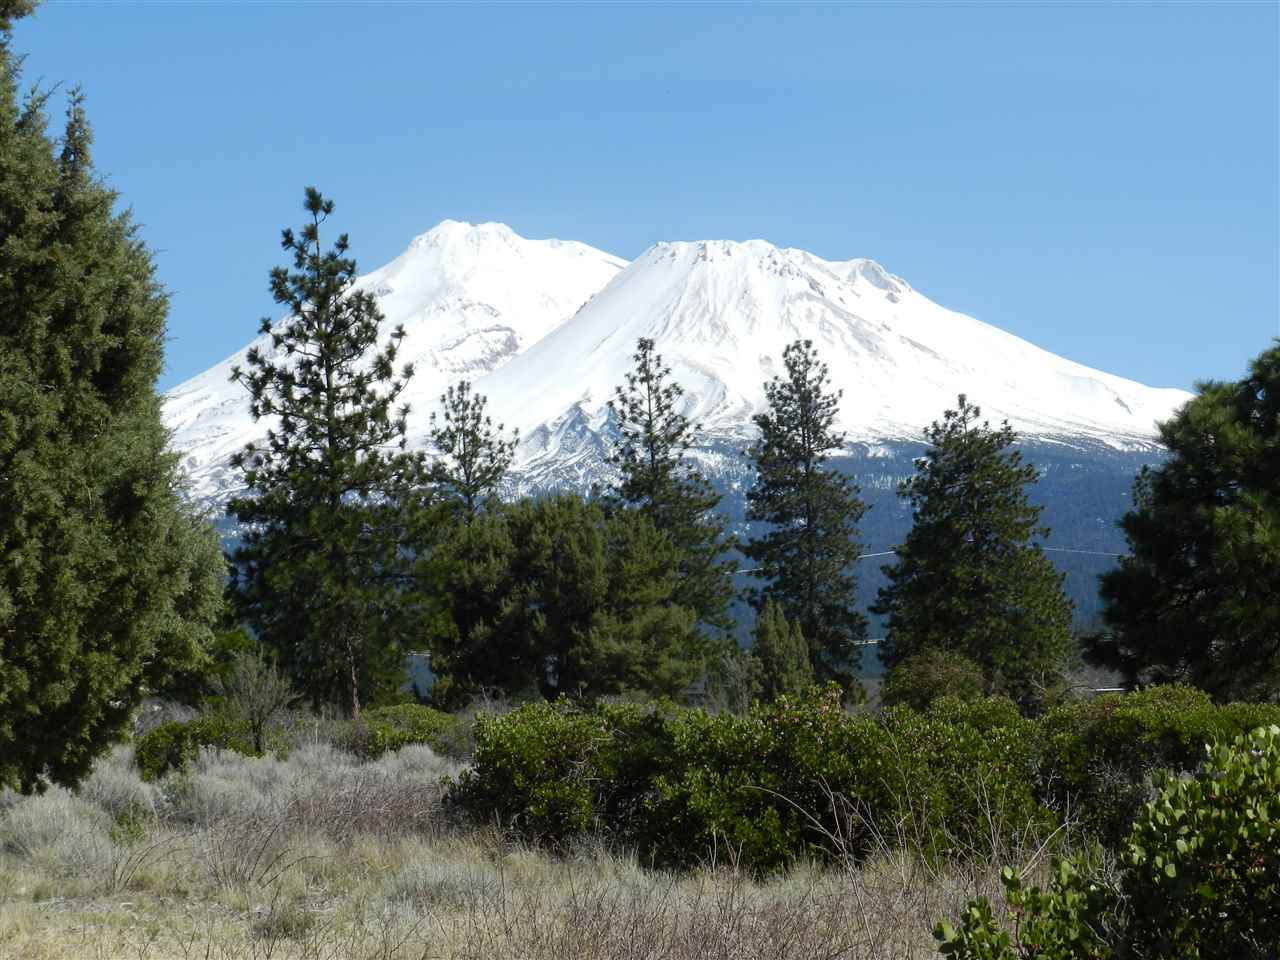 Lake Shastina lot located on a cul-de-sac. With breathtaking views of Mt. Shasta. Sitting on over a quarter of an acre. Ready for you to build your home.